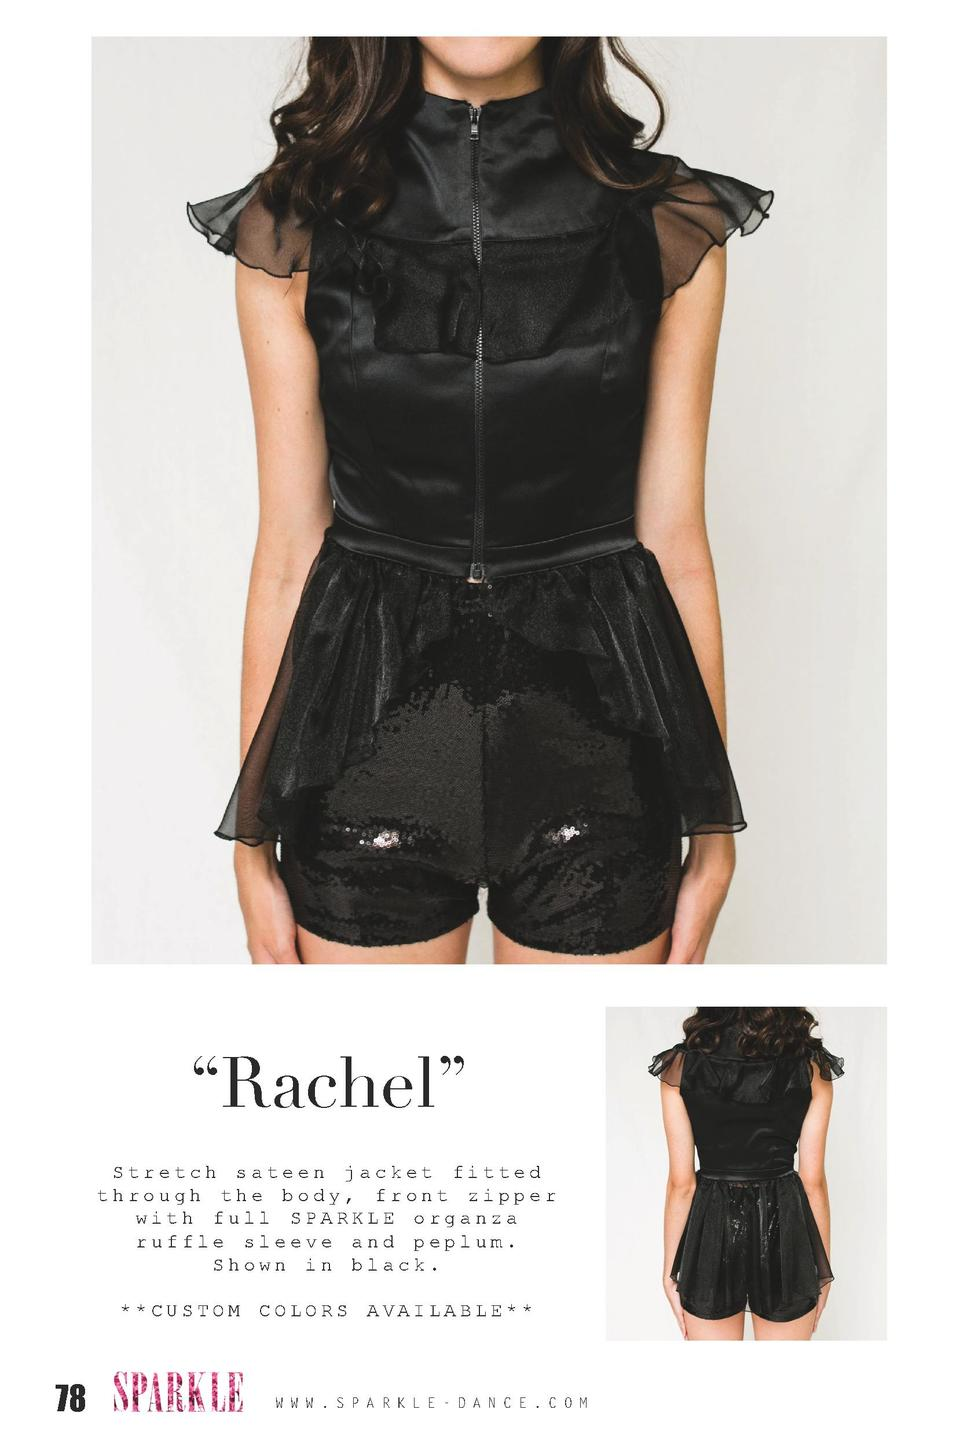 Rachel    Stretch sateen jacket fitted through the body, front zipper with full SPARKLE organza ruffle sleeve and peplu...